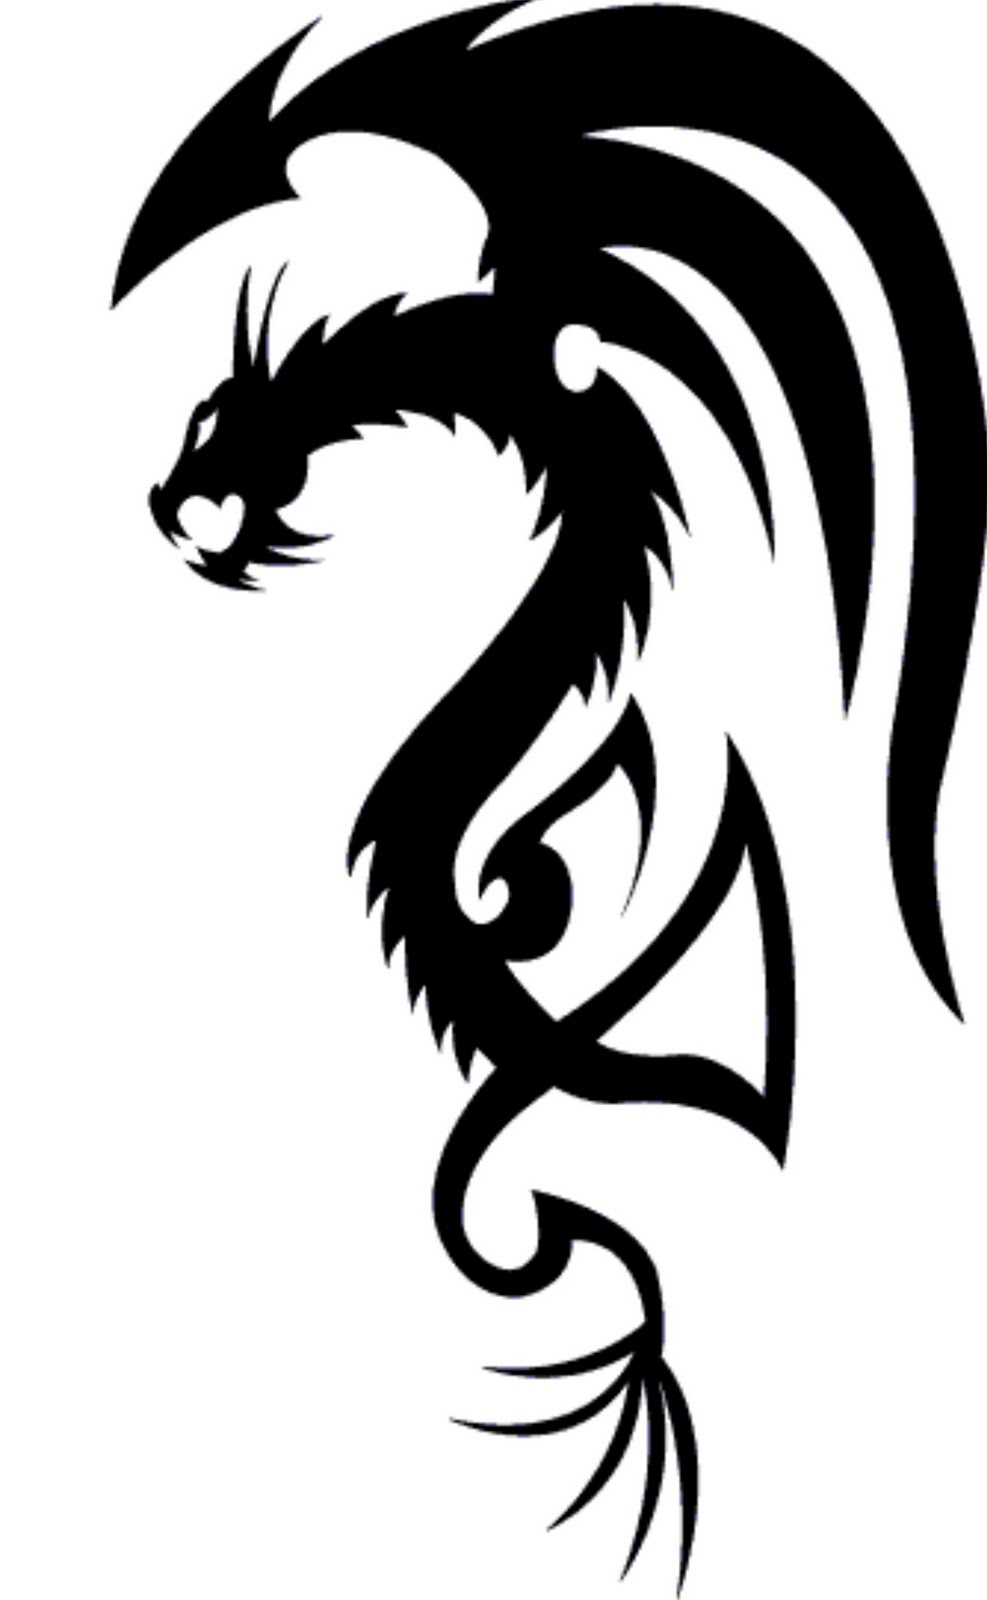 Simple Dragon Tattoo Image - ClipArt Best